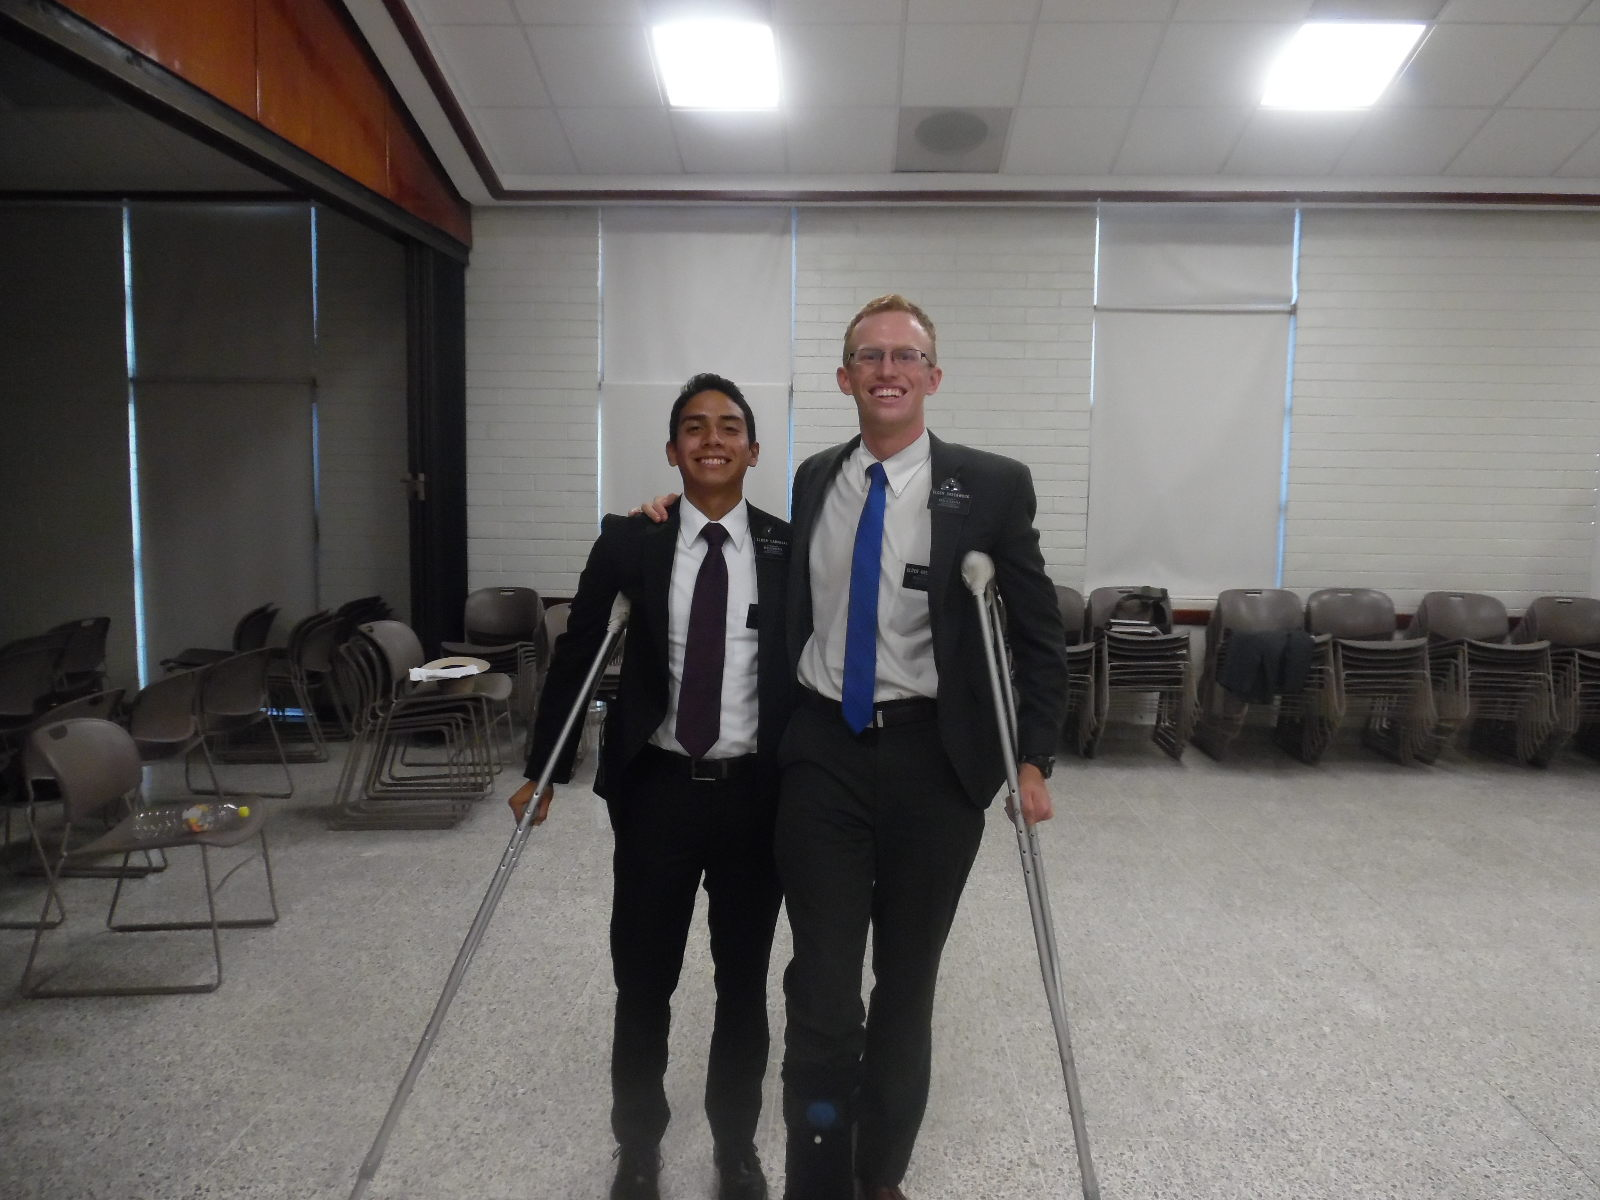 9th Companion - Elder Carvajal